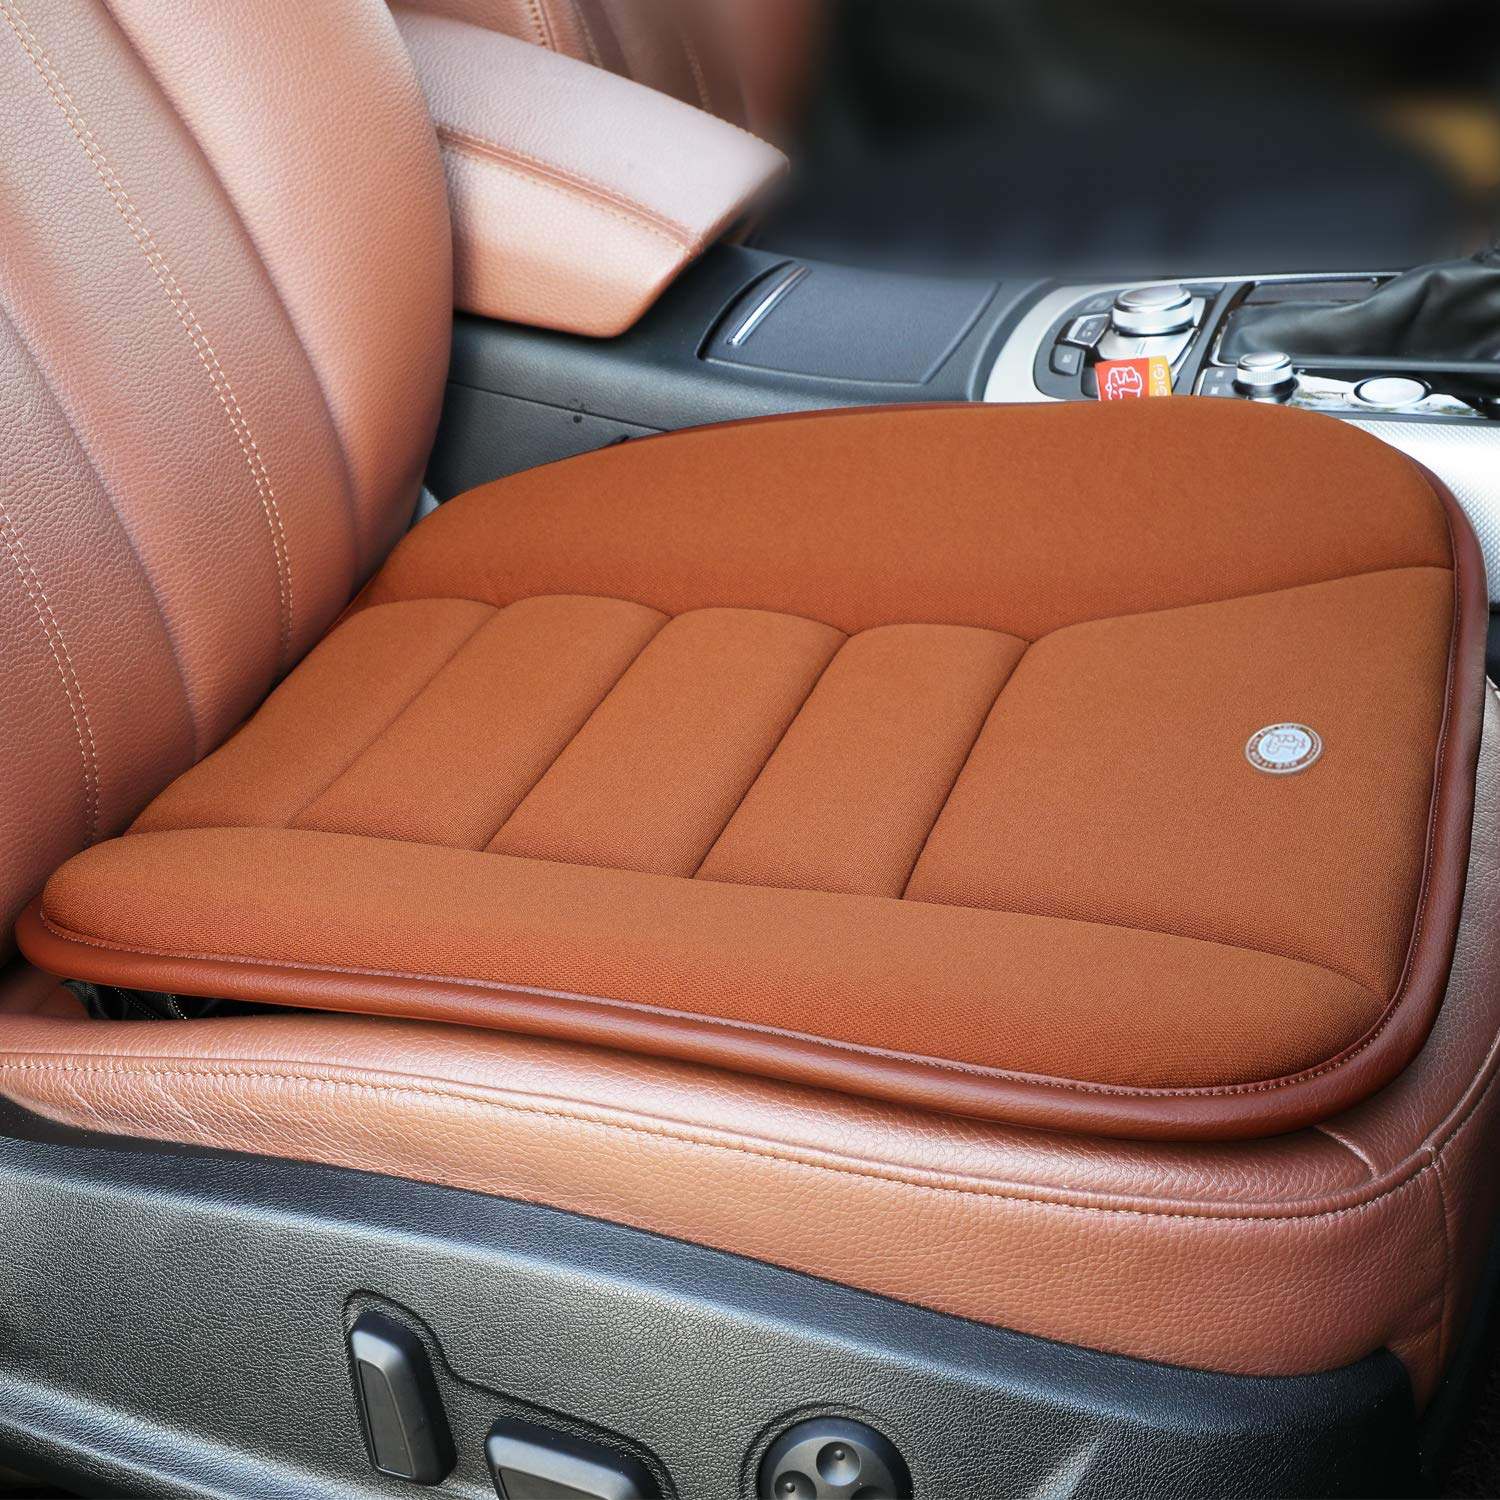 Car Seat Cushion Pad for Car Driver Seat Office chair Home Use Memory Foam Seat Cushion Coffee